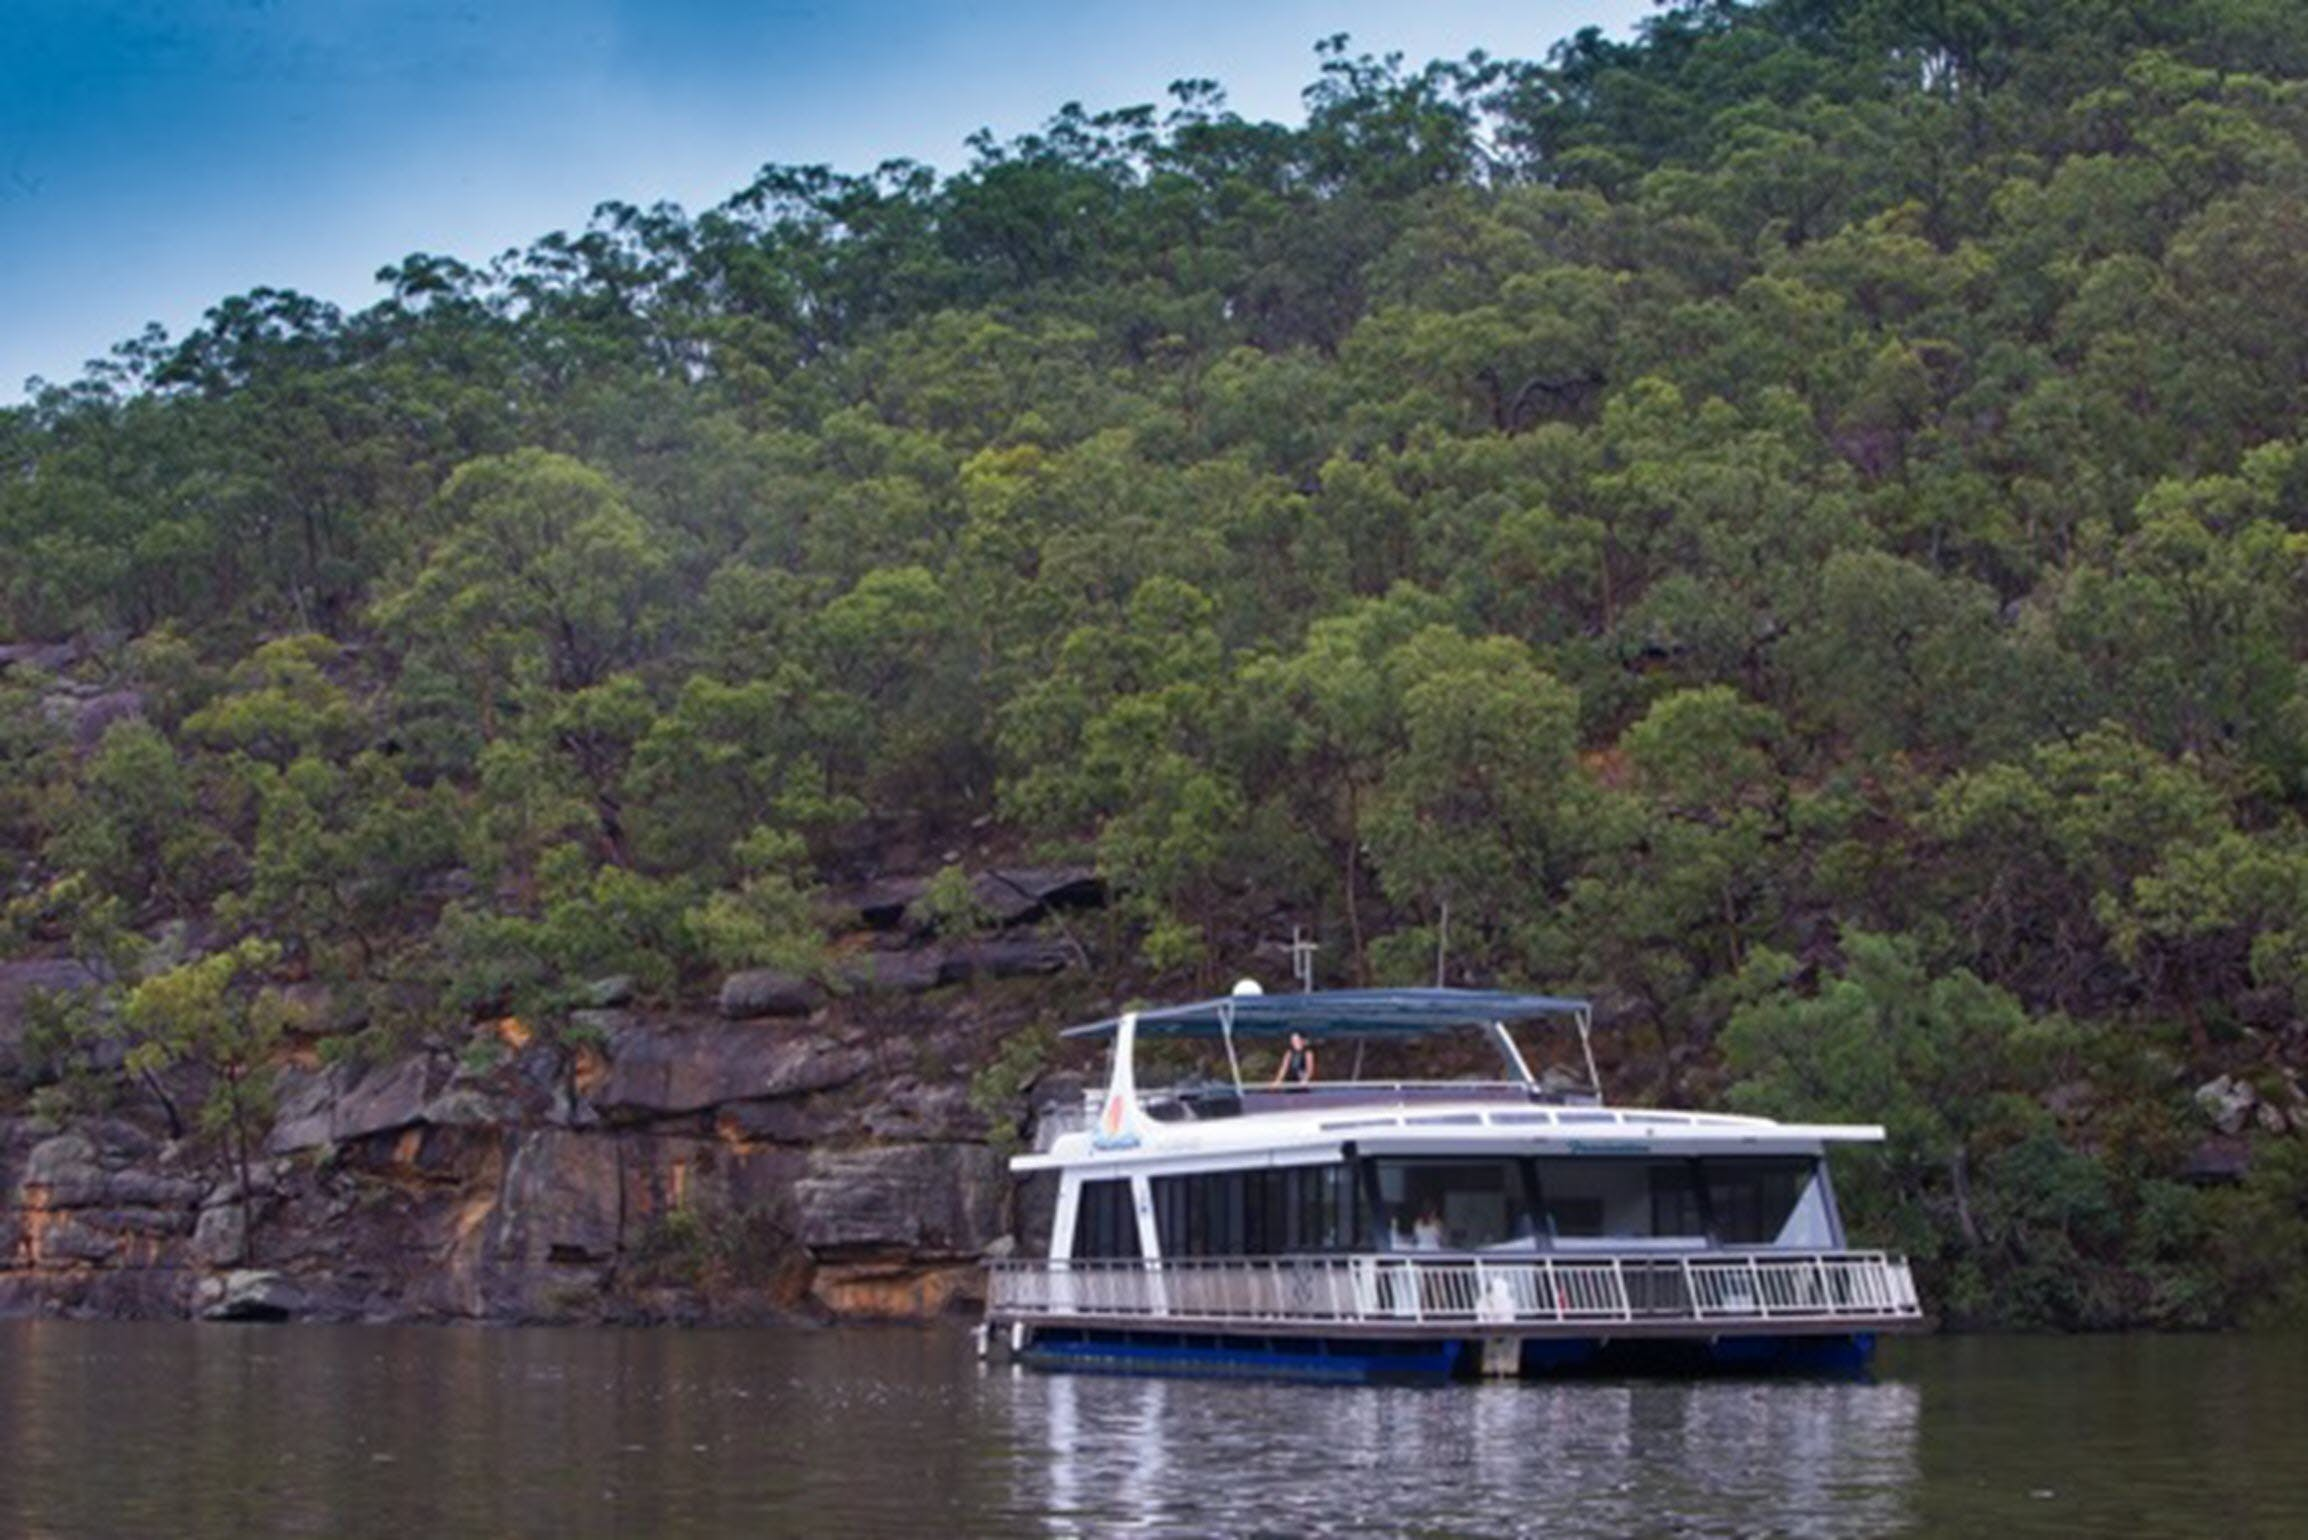 Able Hawkesbury River Houseboats - Kayaks and Dayboats - Perisher Accommodation